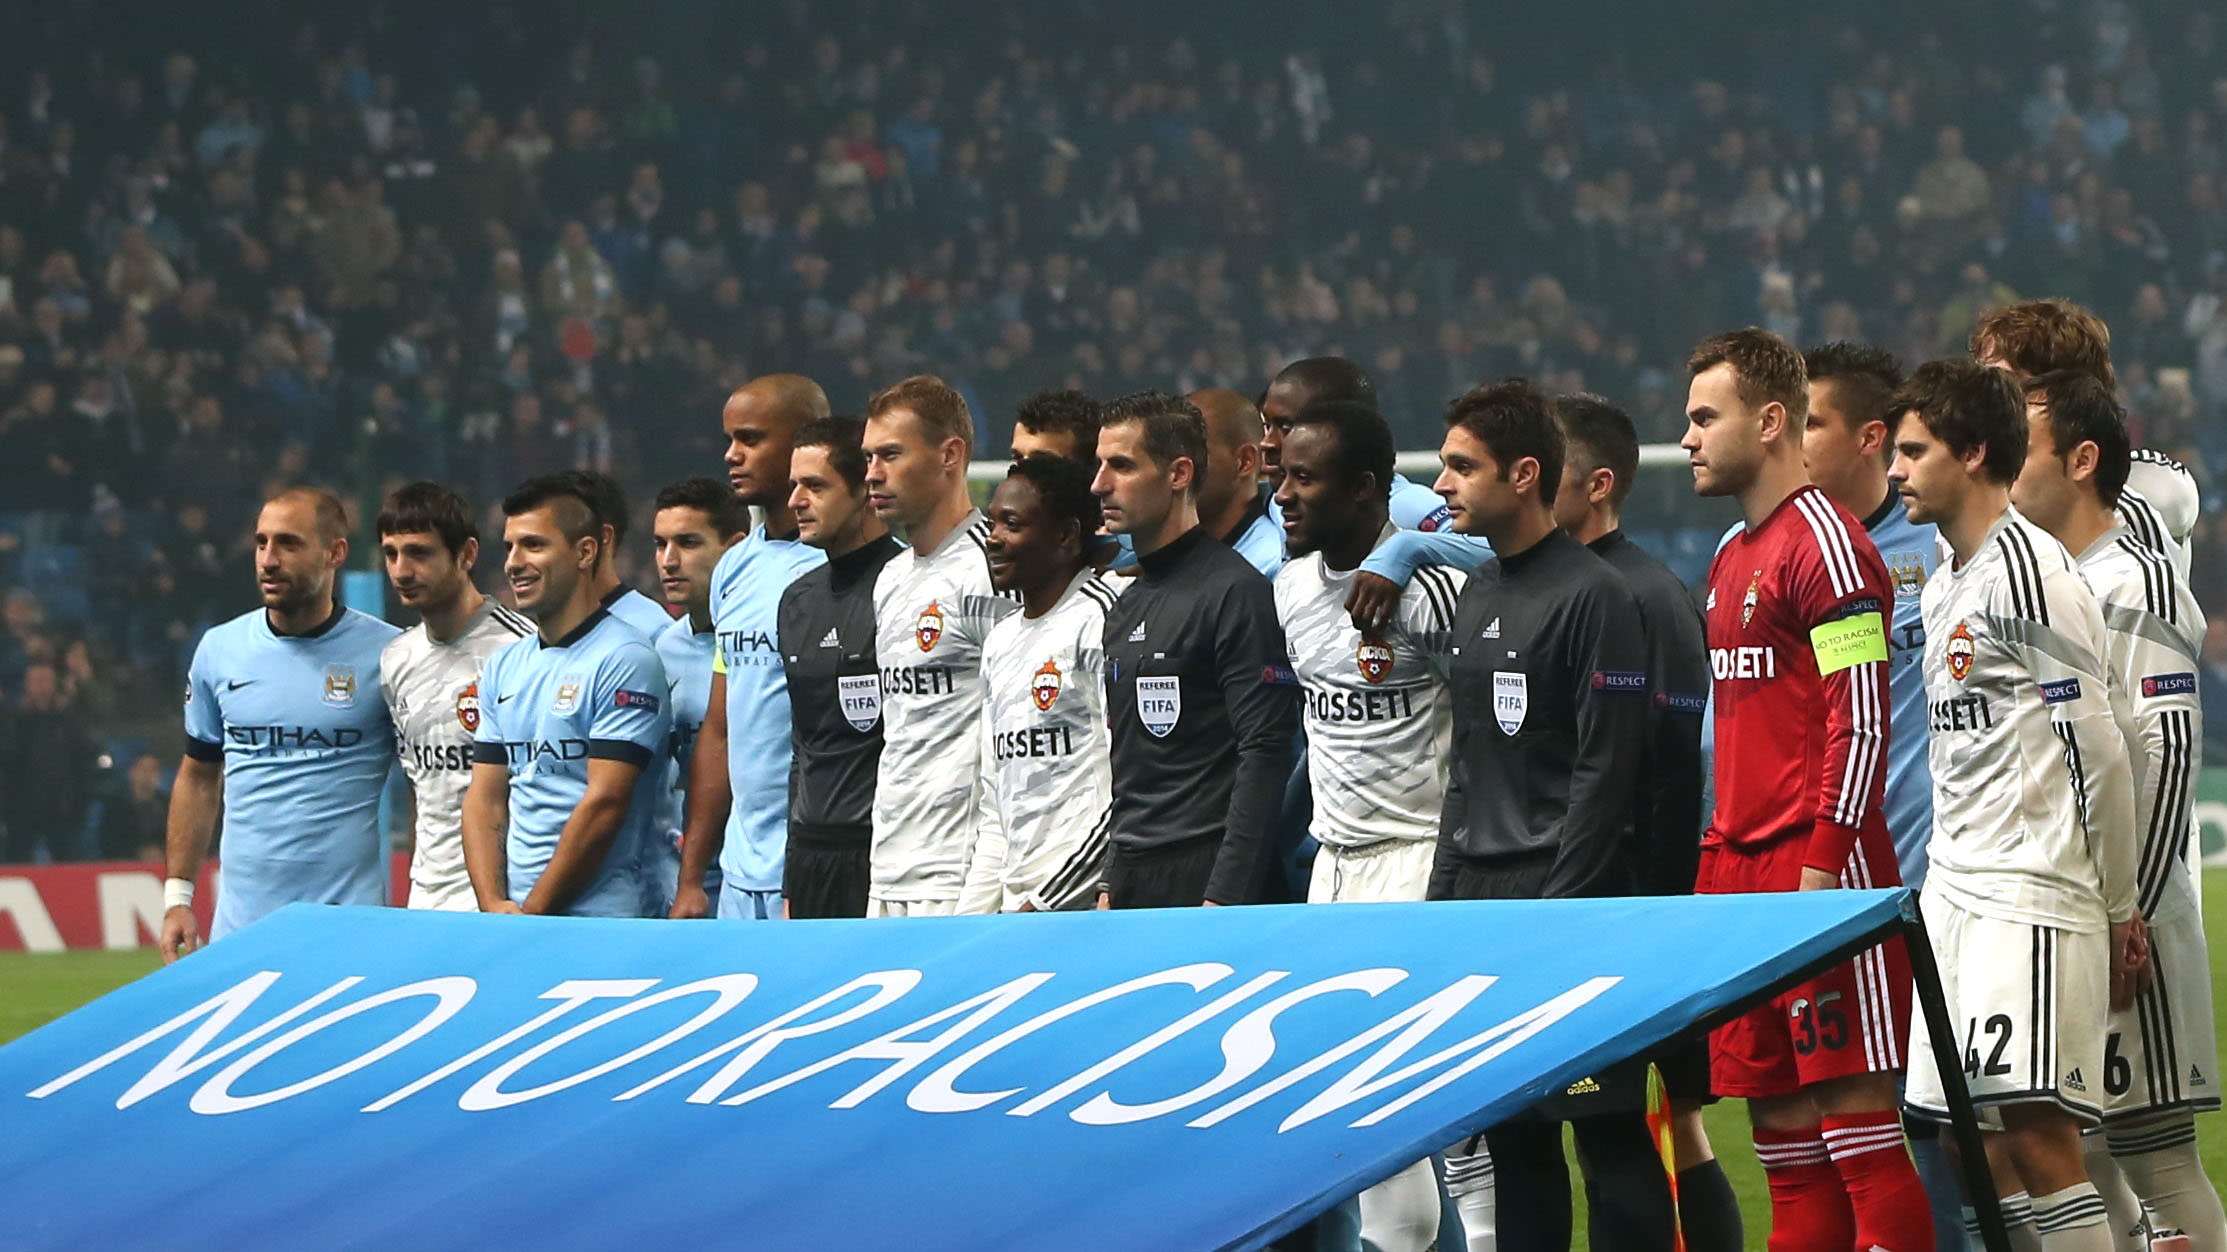 Manchester City and CSKA Moscow players with a No To Racism banner before a UEFA Champions League match (Action Images / Lee Smith via Reuters)